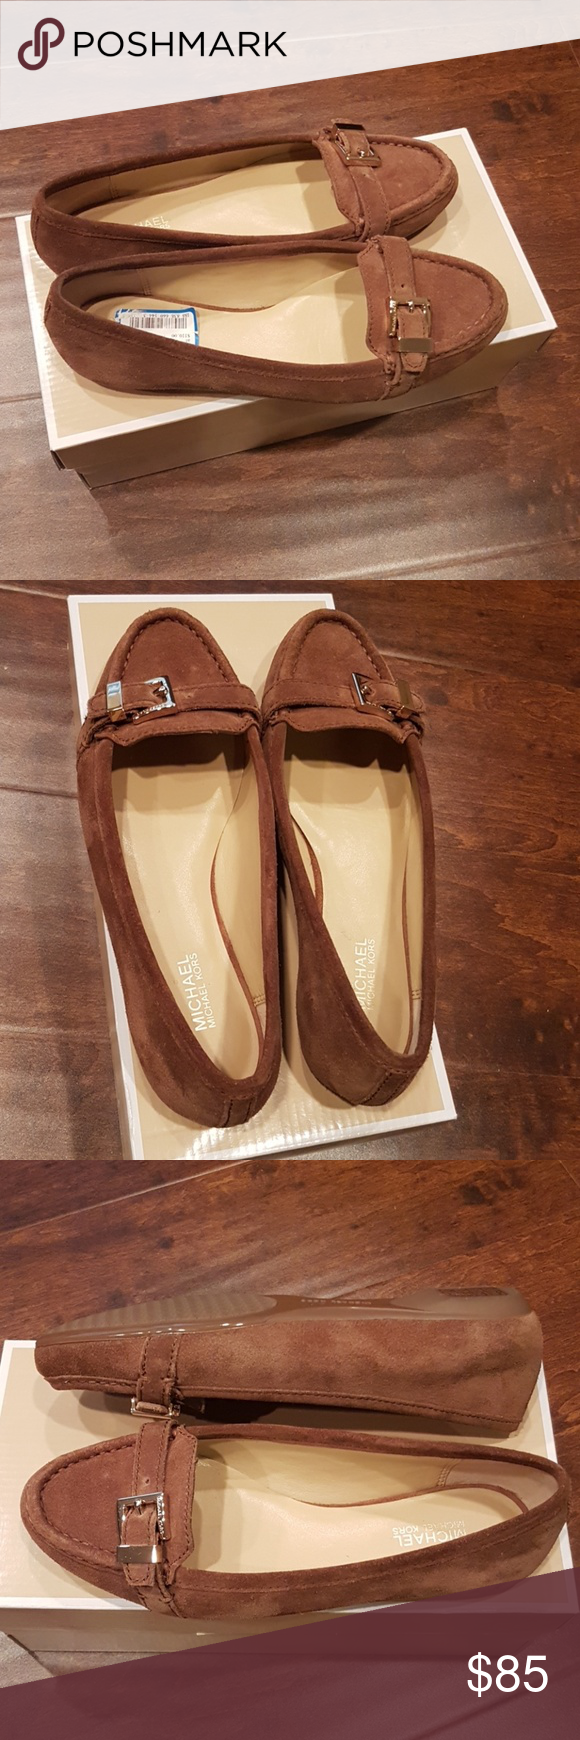 Michael Kors Rory Moccasin - Size 6 NWT